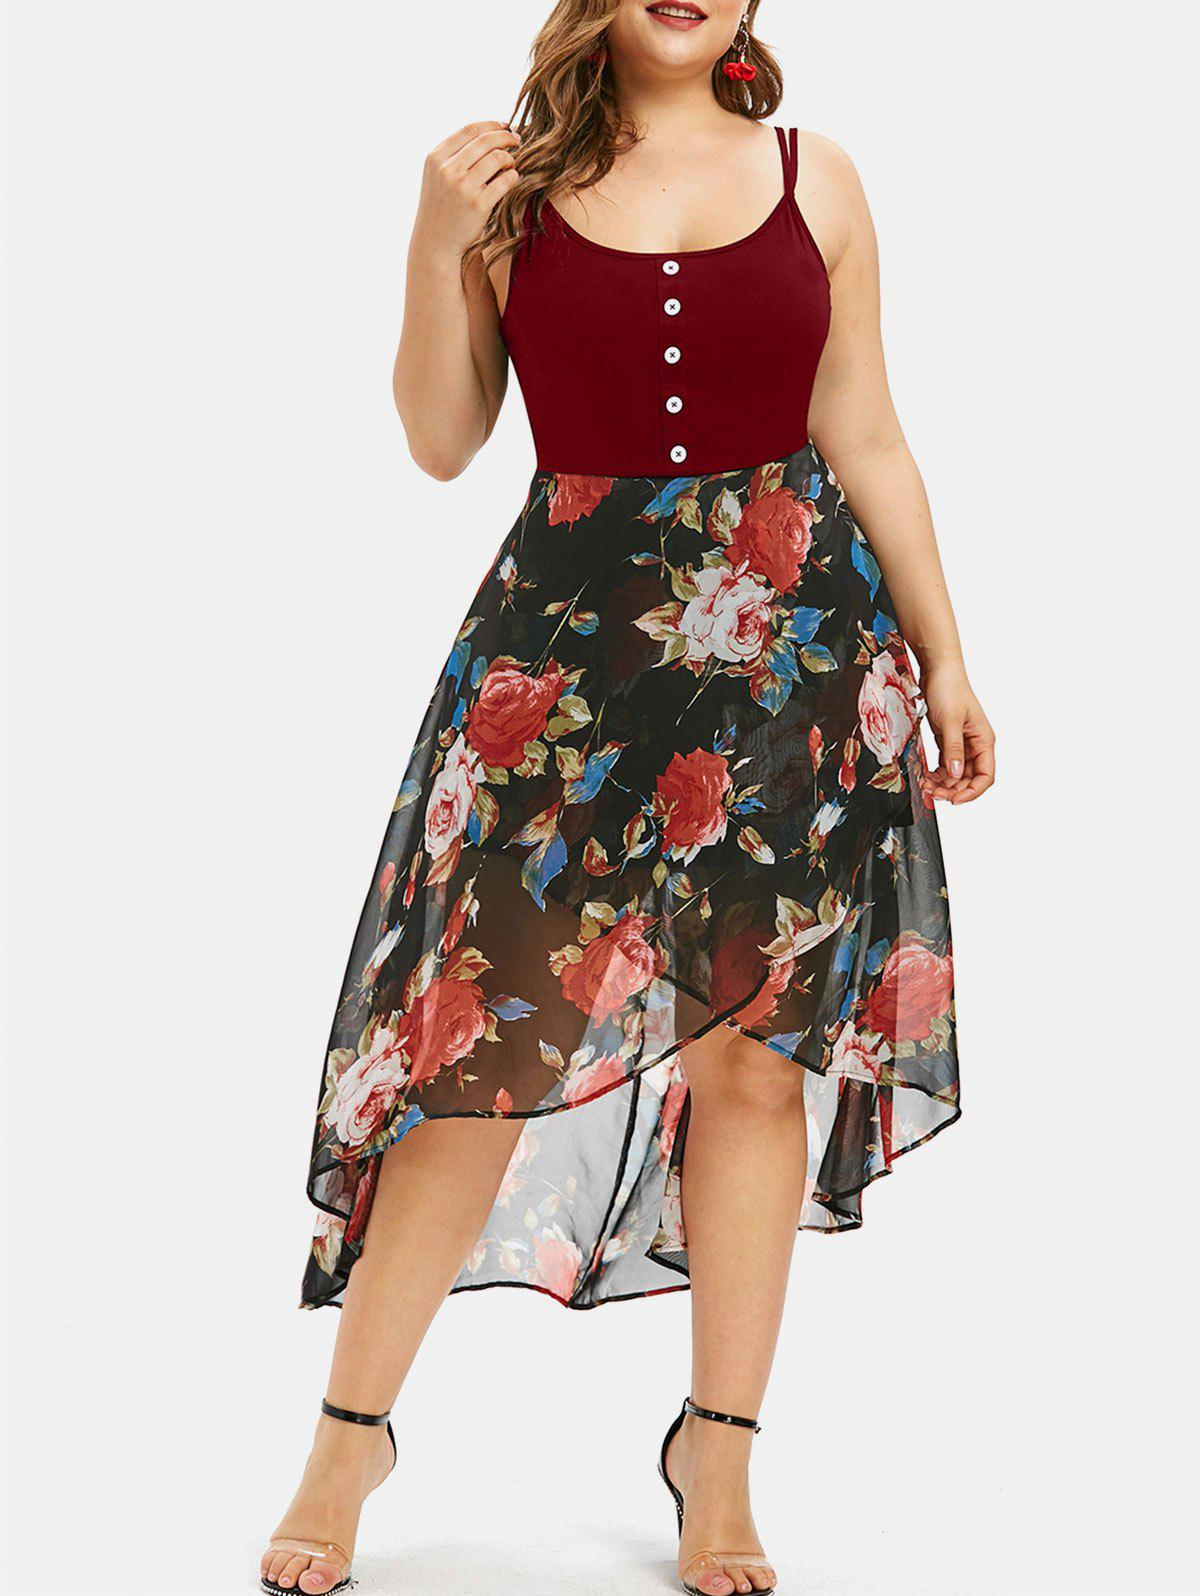 Shop Floral Overlay High Low Plus Size Dress